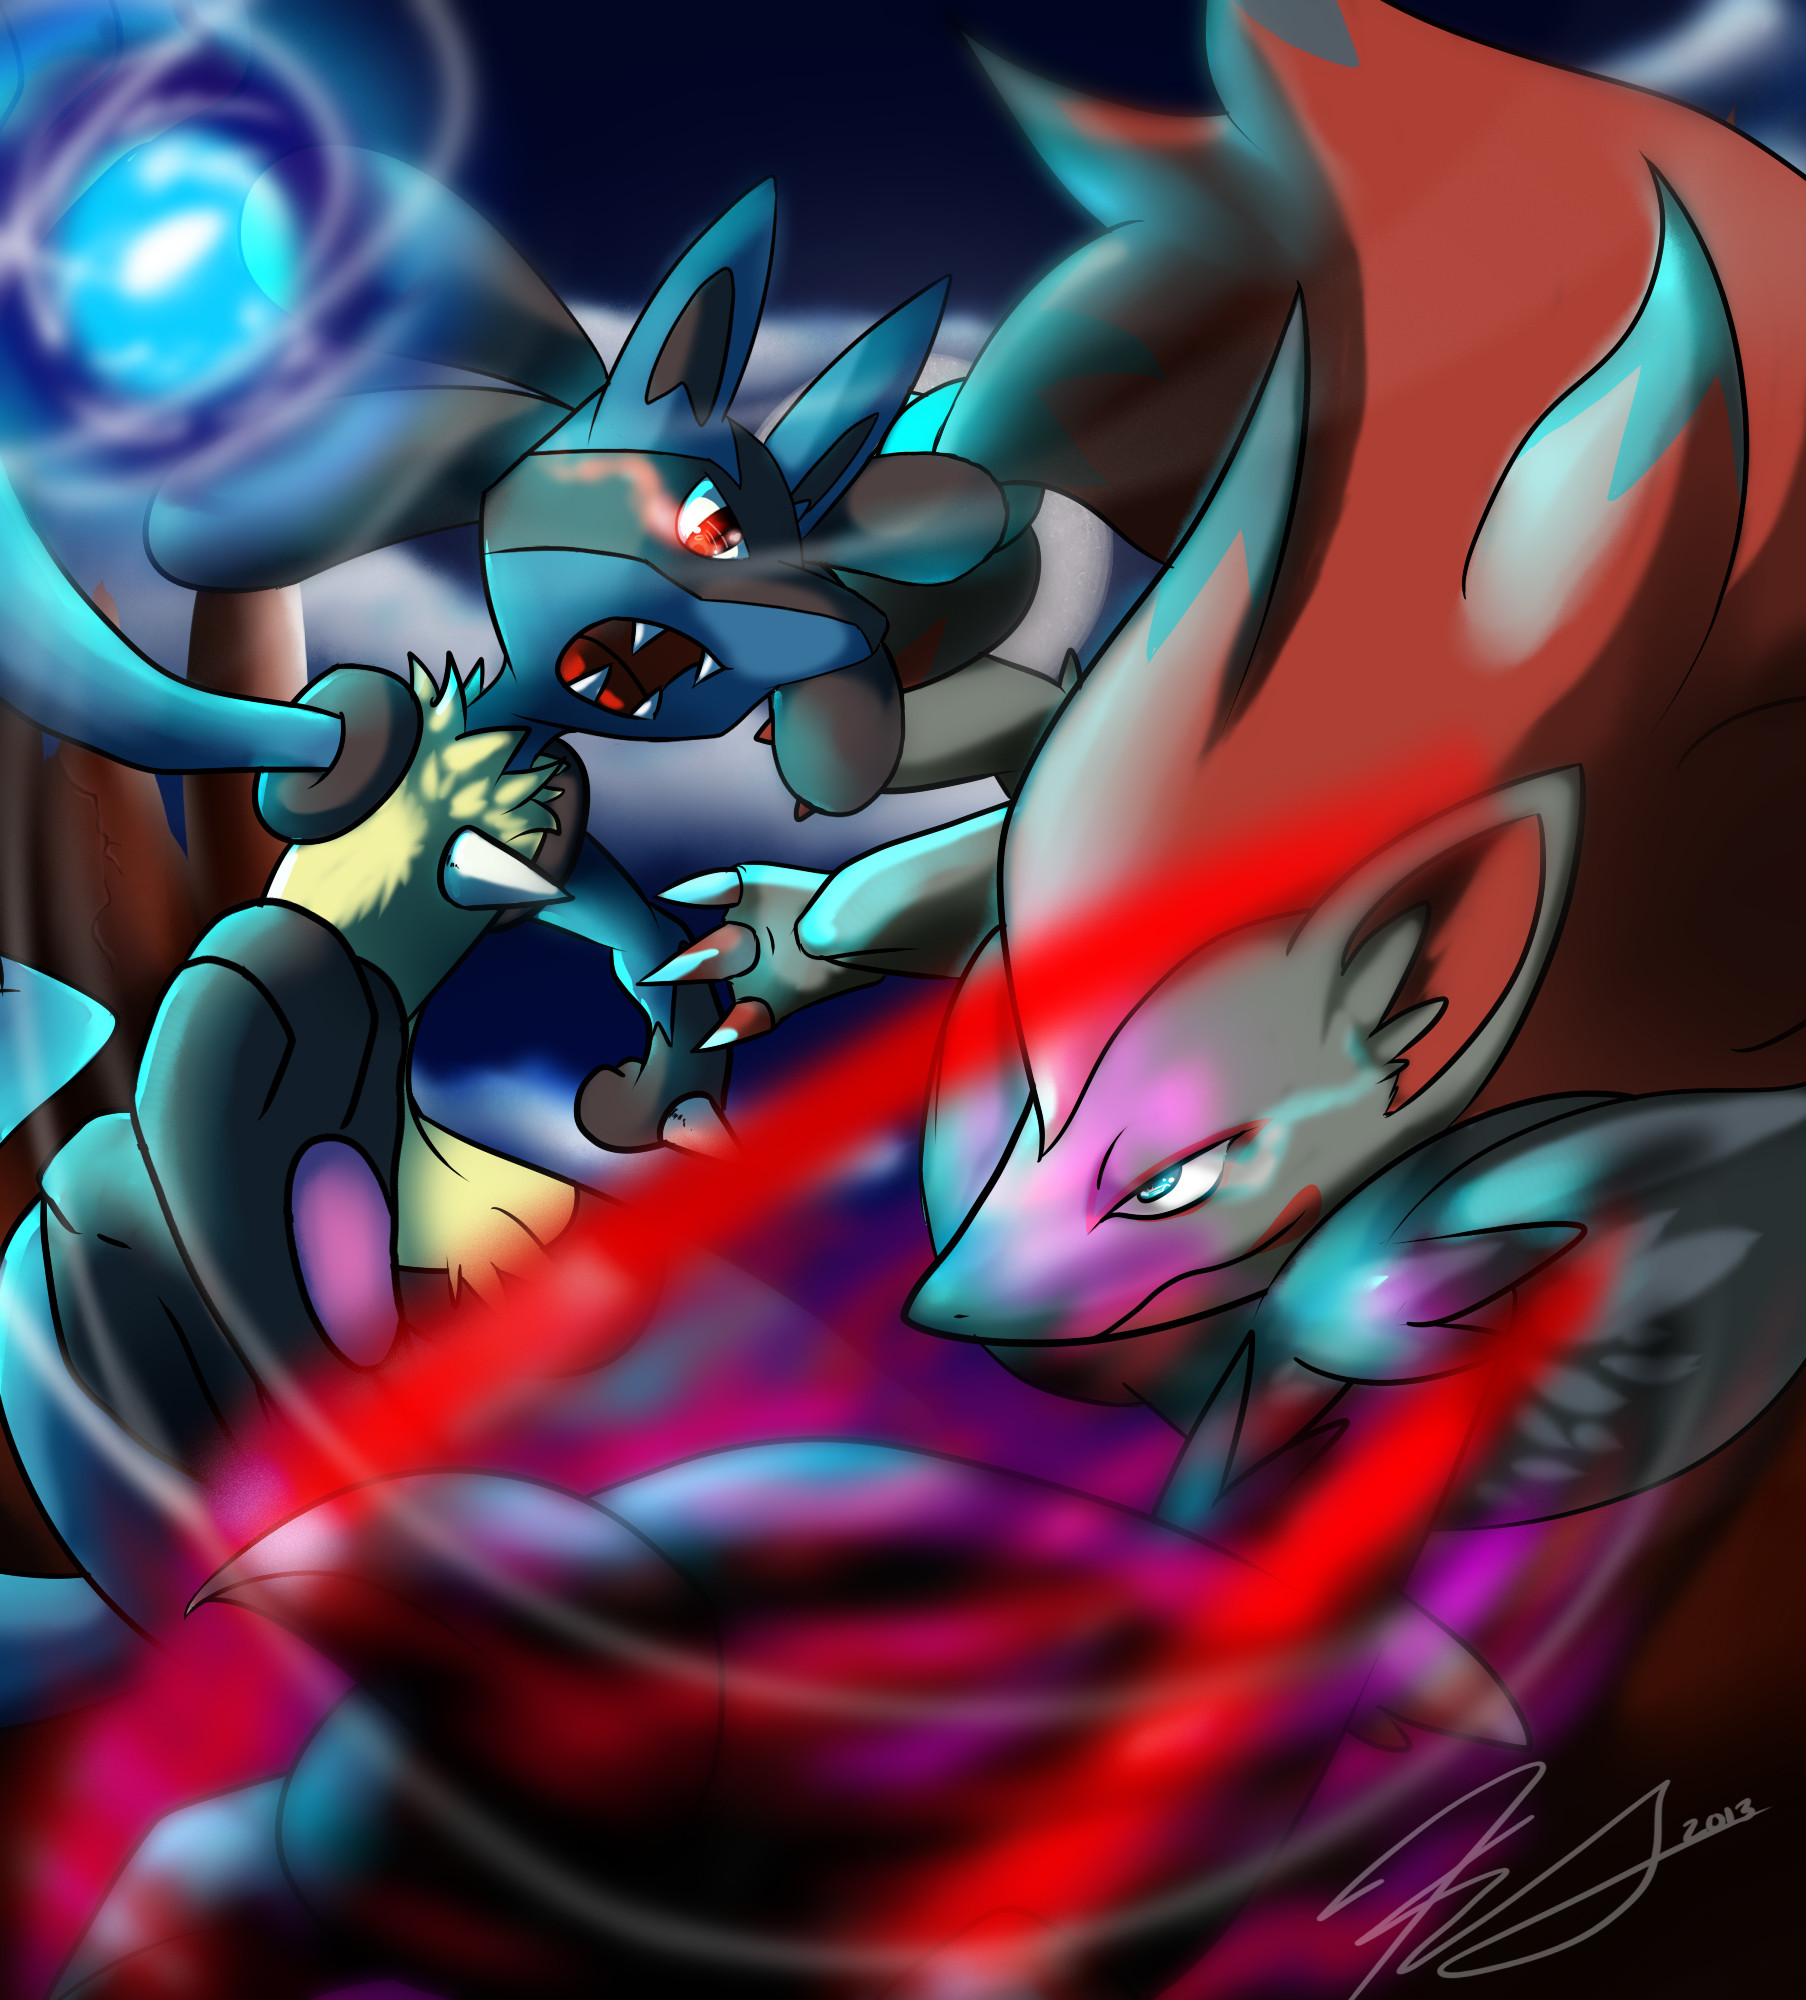 Res: 1806x2000, Pokémon HeartGold and SoulSilver fictional character